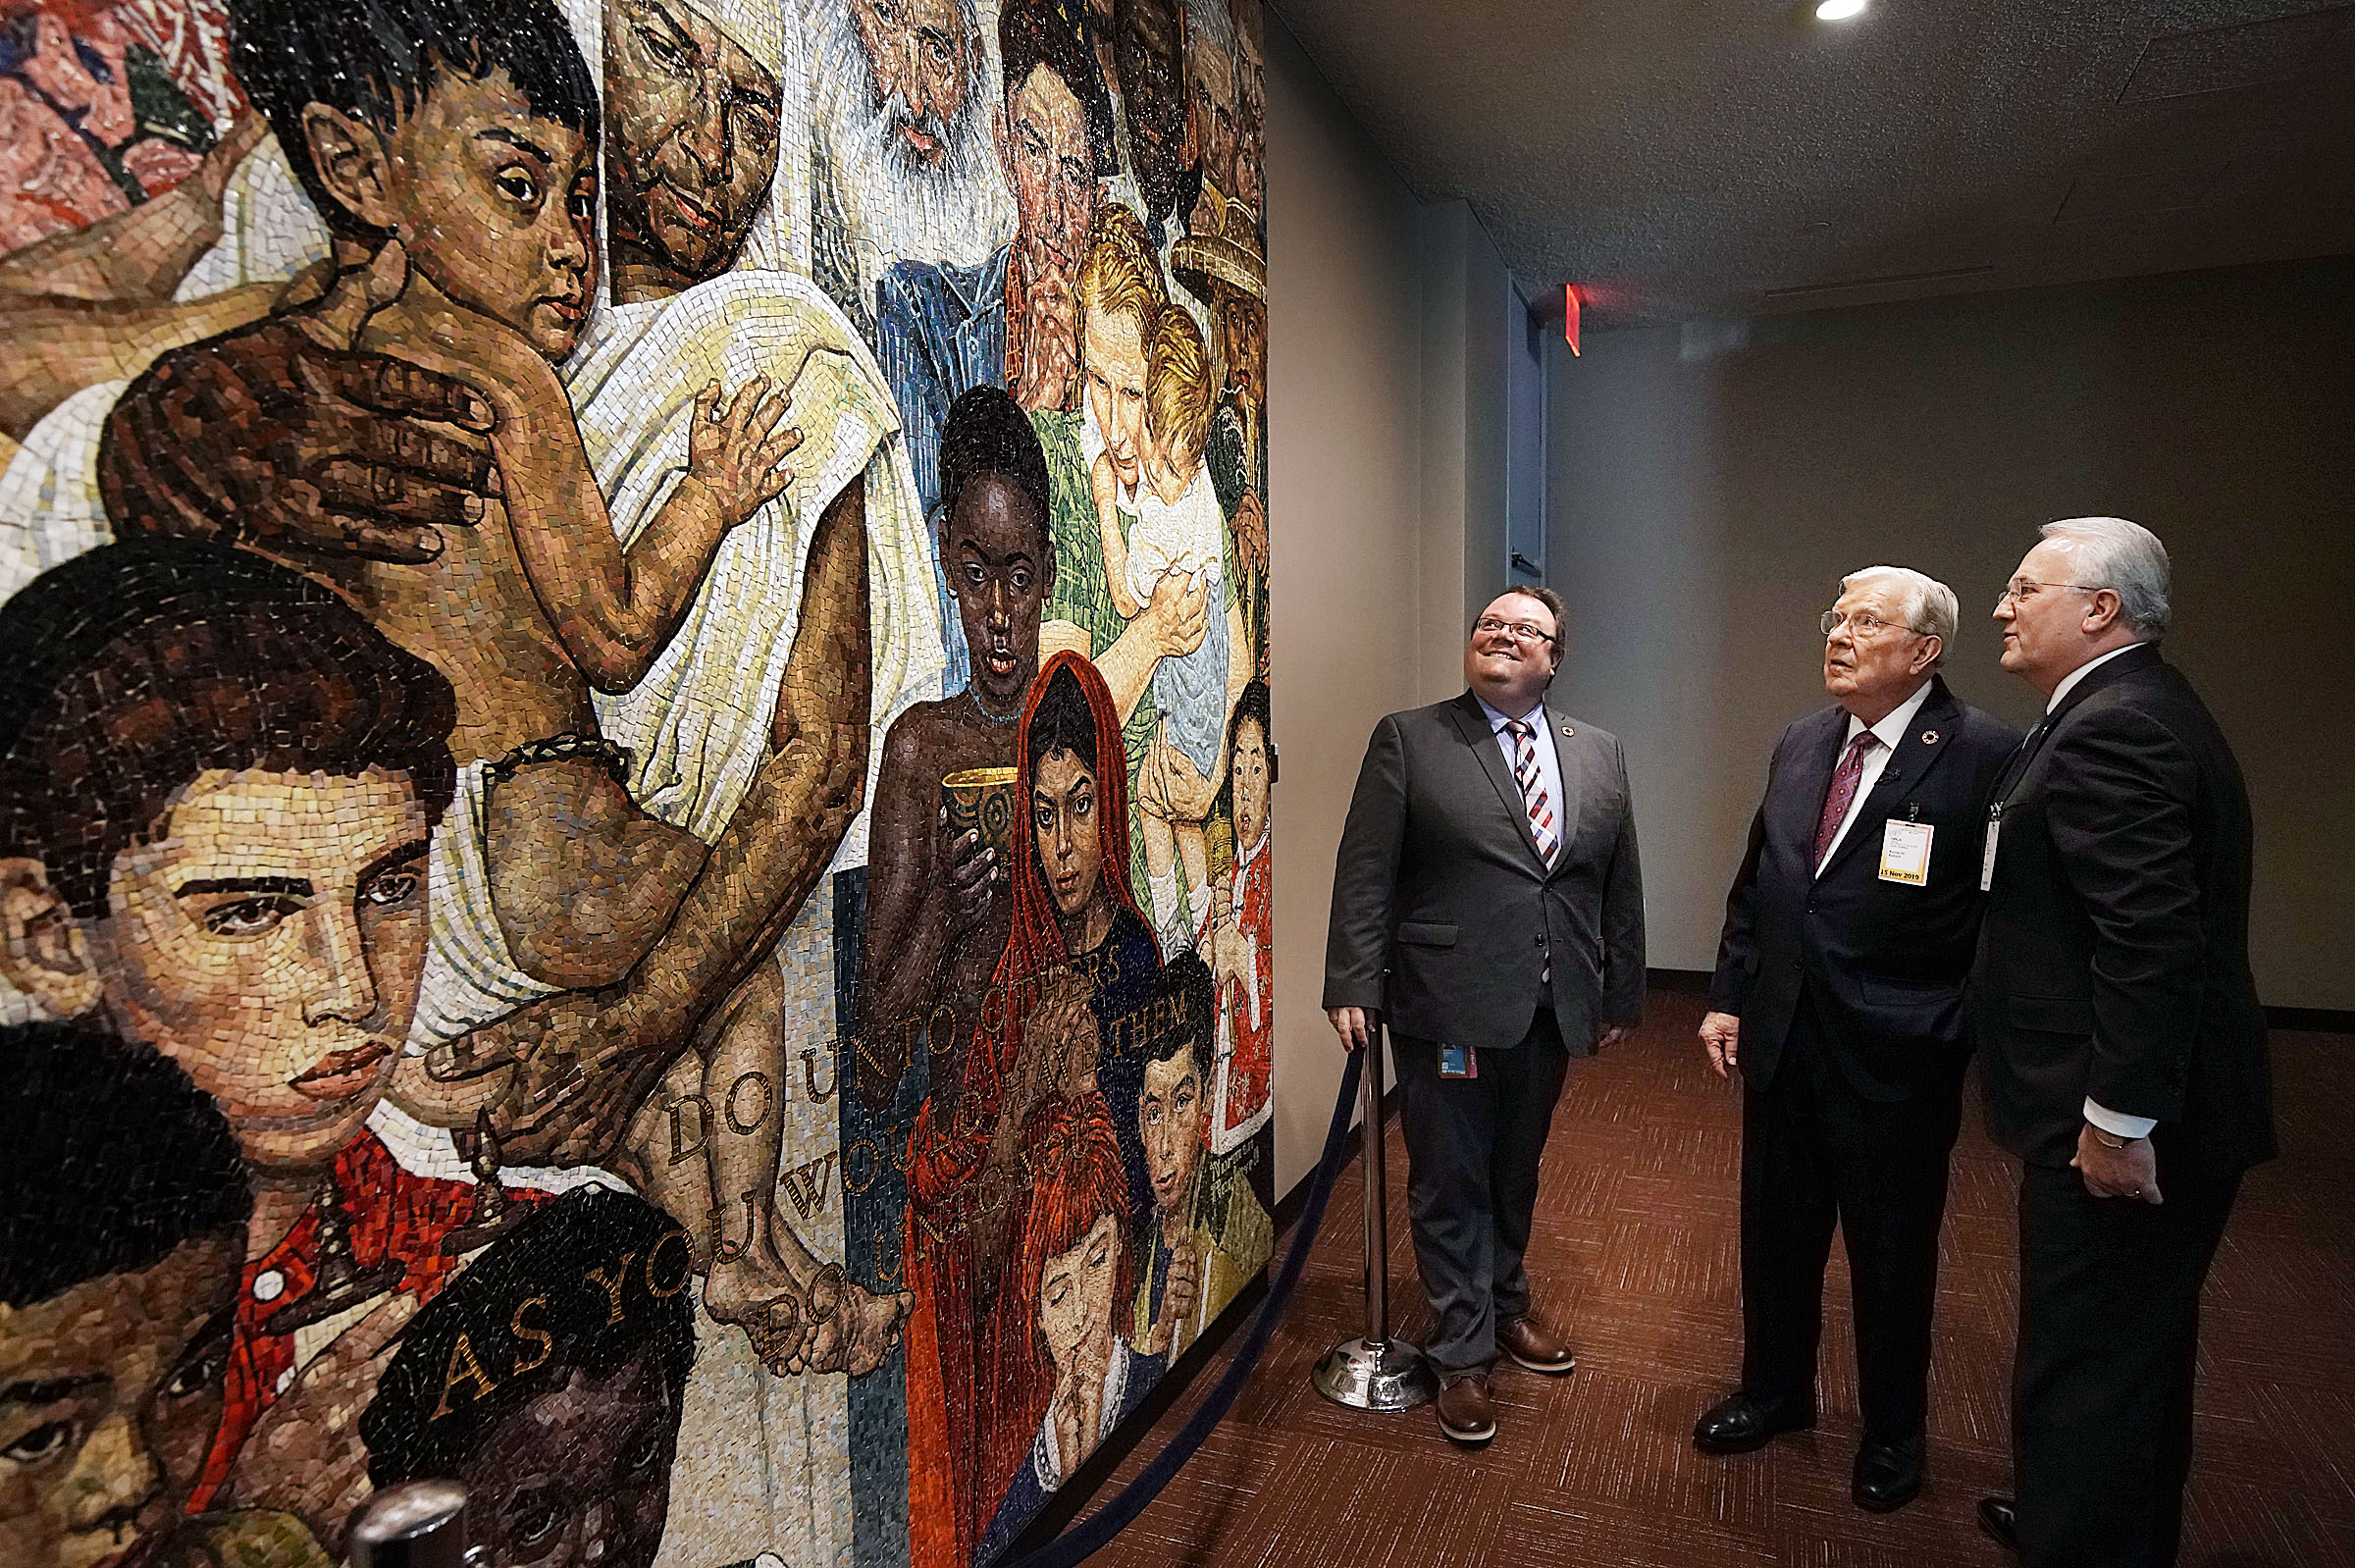 President M. Russell Ballard, second from right, acting president of the Quorum of the Twelve Apostles, and Elder Jack N. Gerard, right, General Authority Seventy, of The Church of Jesus Christ of Latter-day Saints, look at artwork as they tour the United Nations in New York City on Friday, Nov. 15, 2019. Their guide, left, is Felipe Queipo, communications officer for the UN Department of Global Communications.